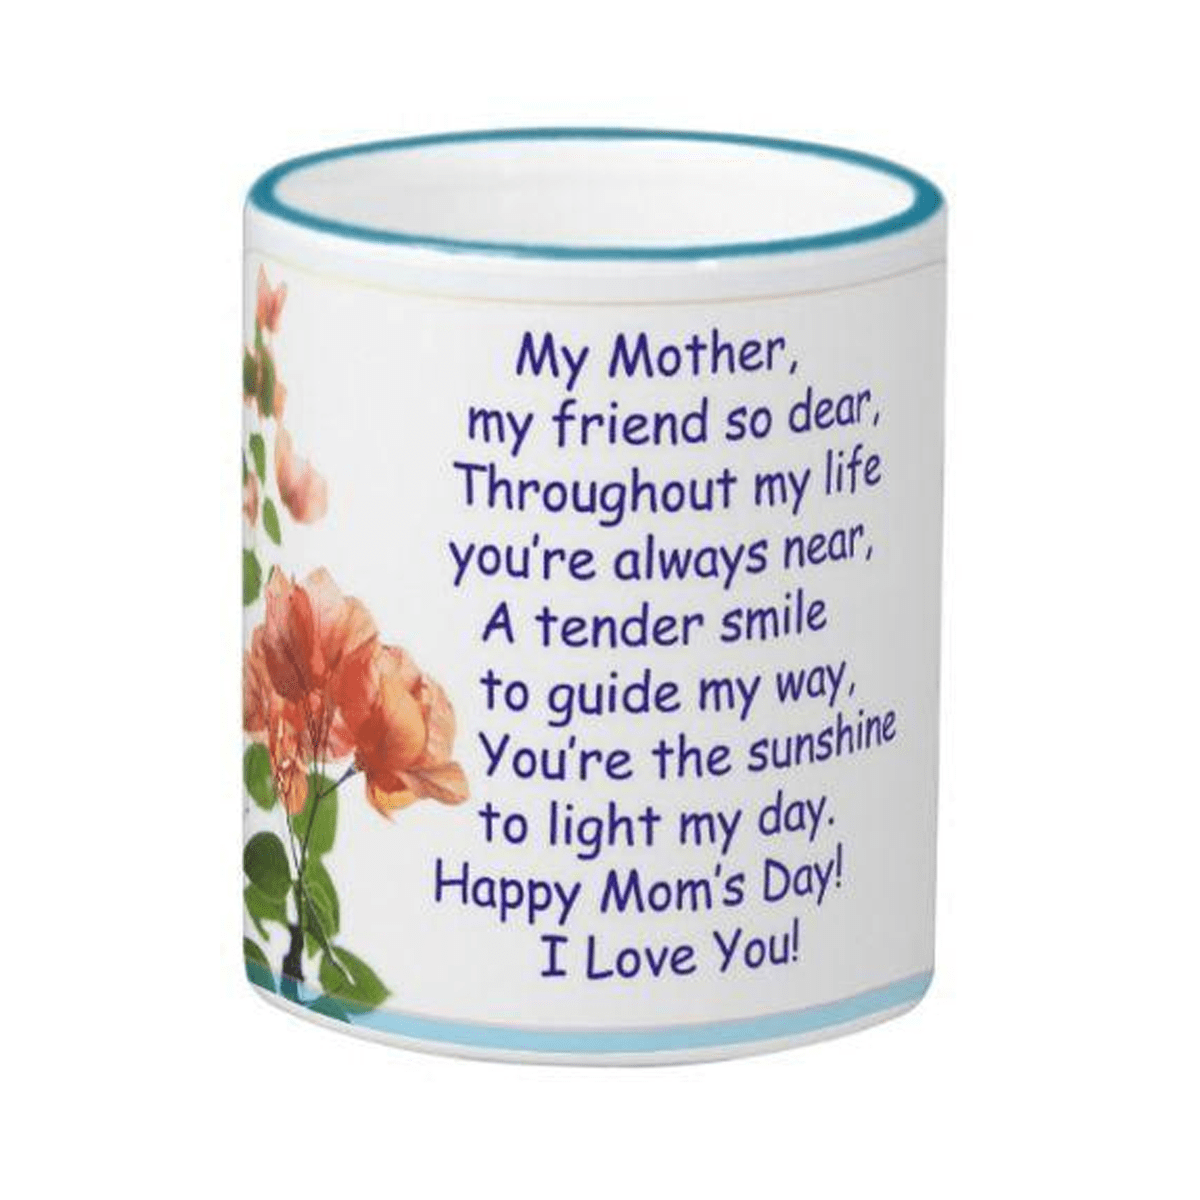 HAPPY MOTHERS DAY Rim Handle Blue Ceramic Mug